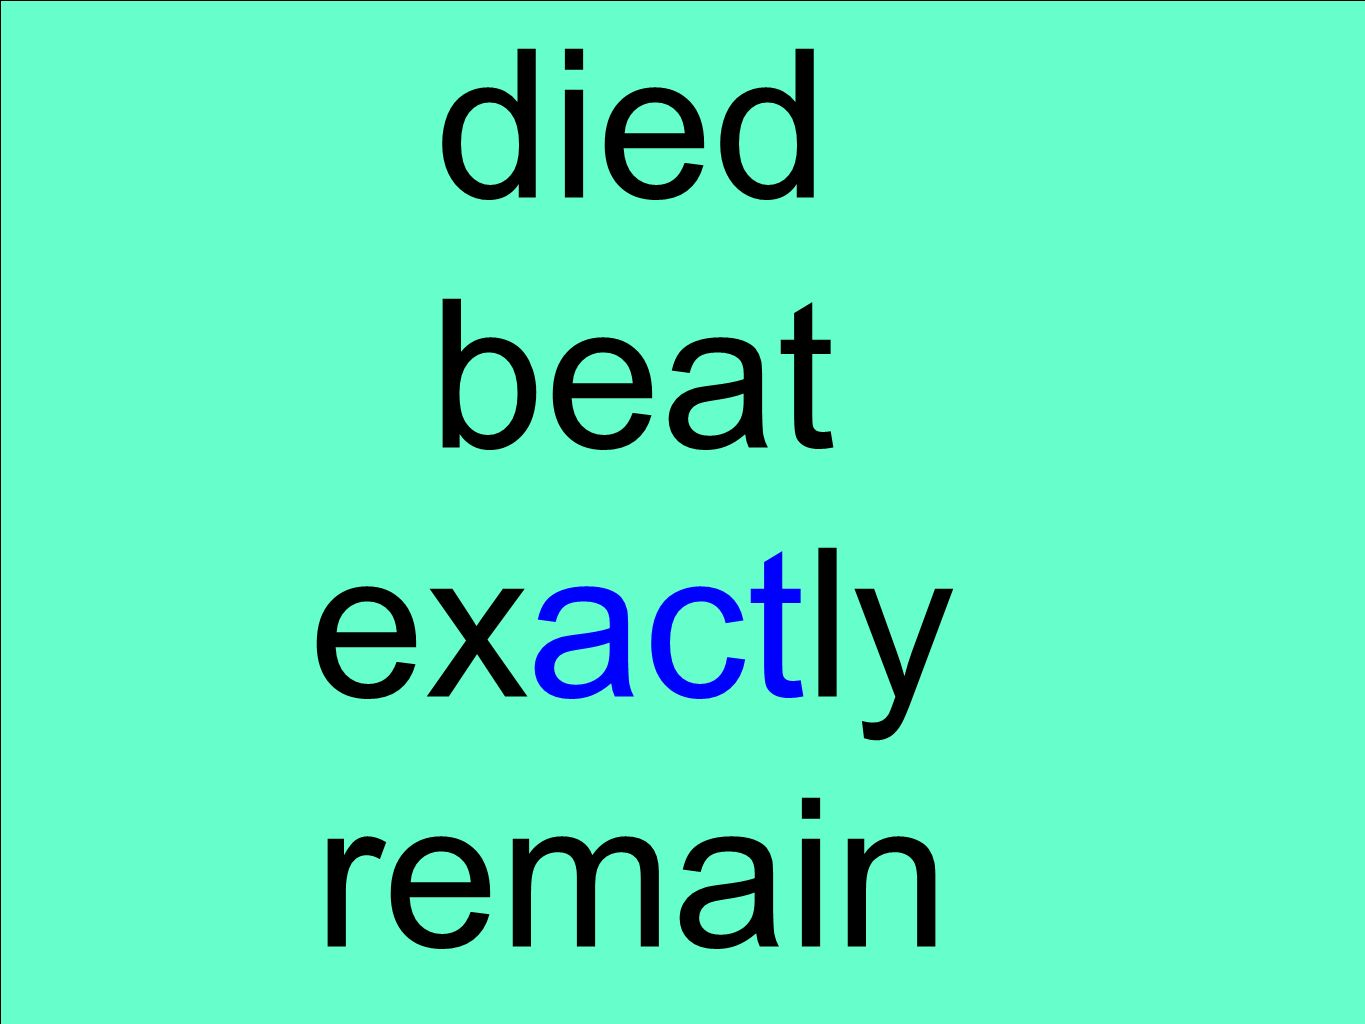 died beat exactly remain